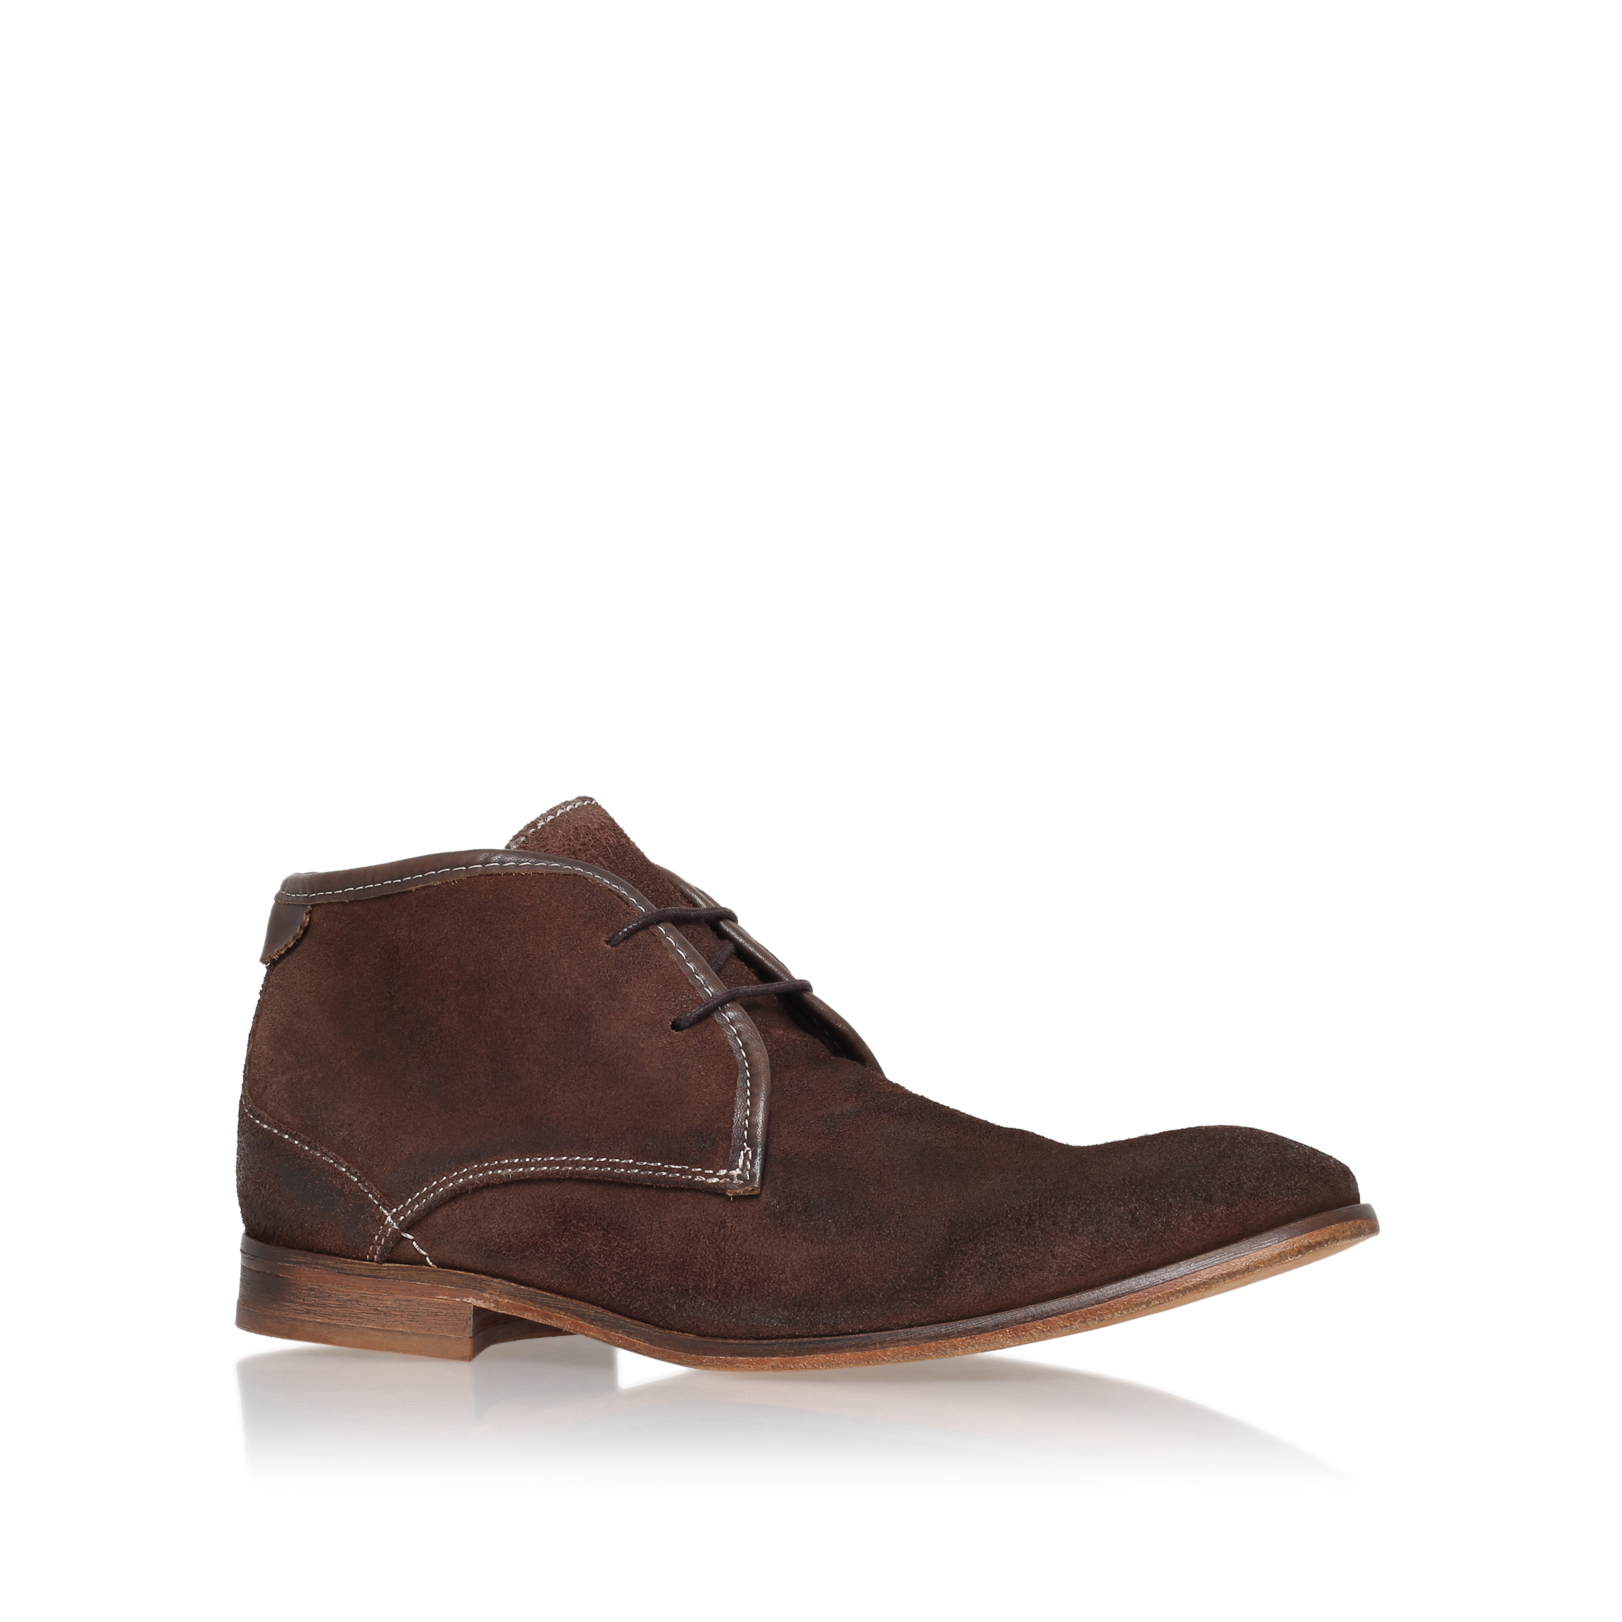 CRUISE SUEDE DESERT BOOT